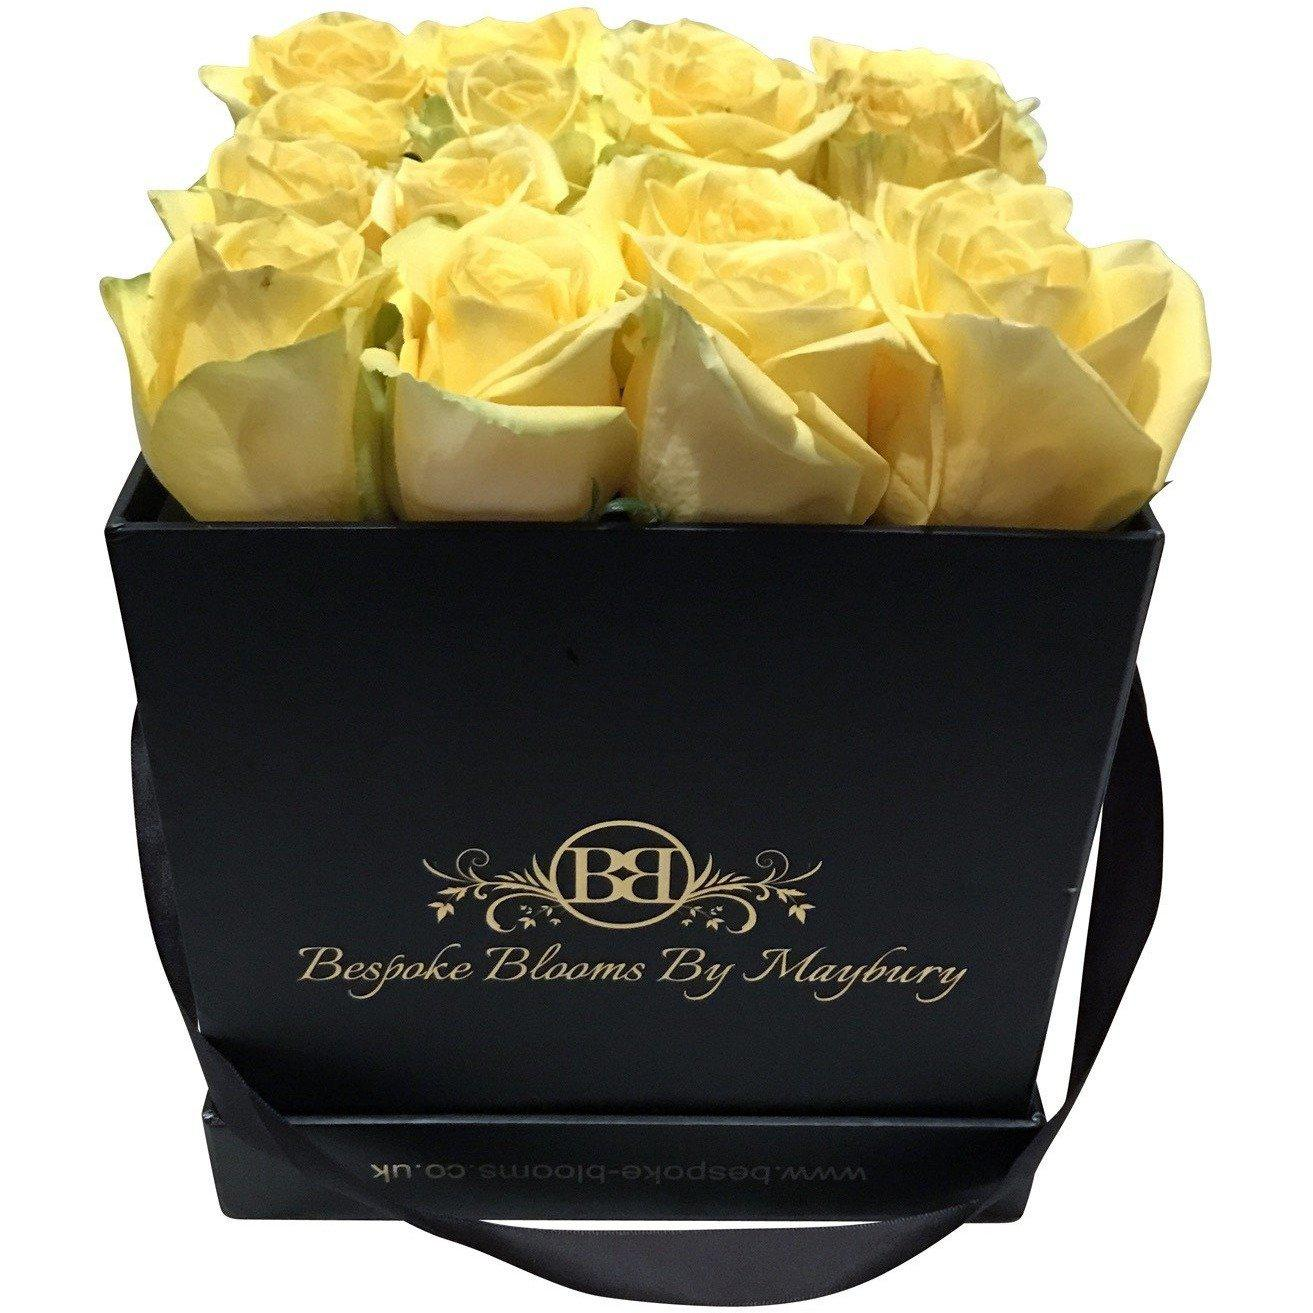 Yellow Rose Bloom Box - Bespoke Blooms By Maybury